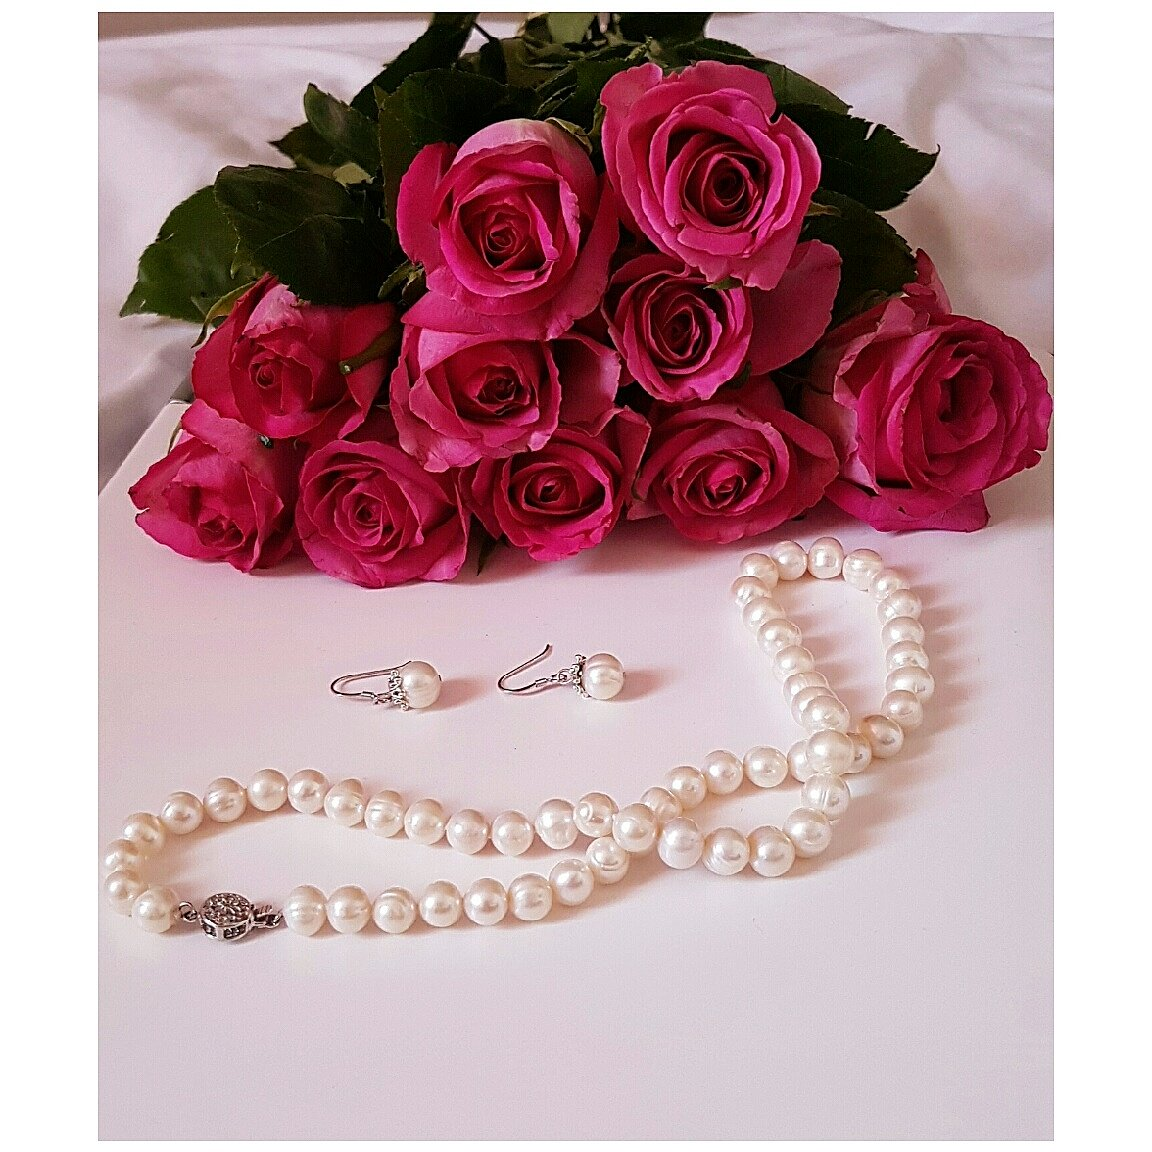 Ideas For Pearl Wedding Anniversary Gifts: 10 Pearl Anniversary Gift Ideas For That Special Person